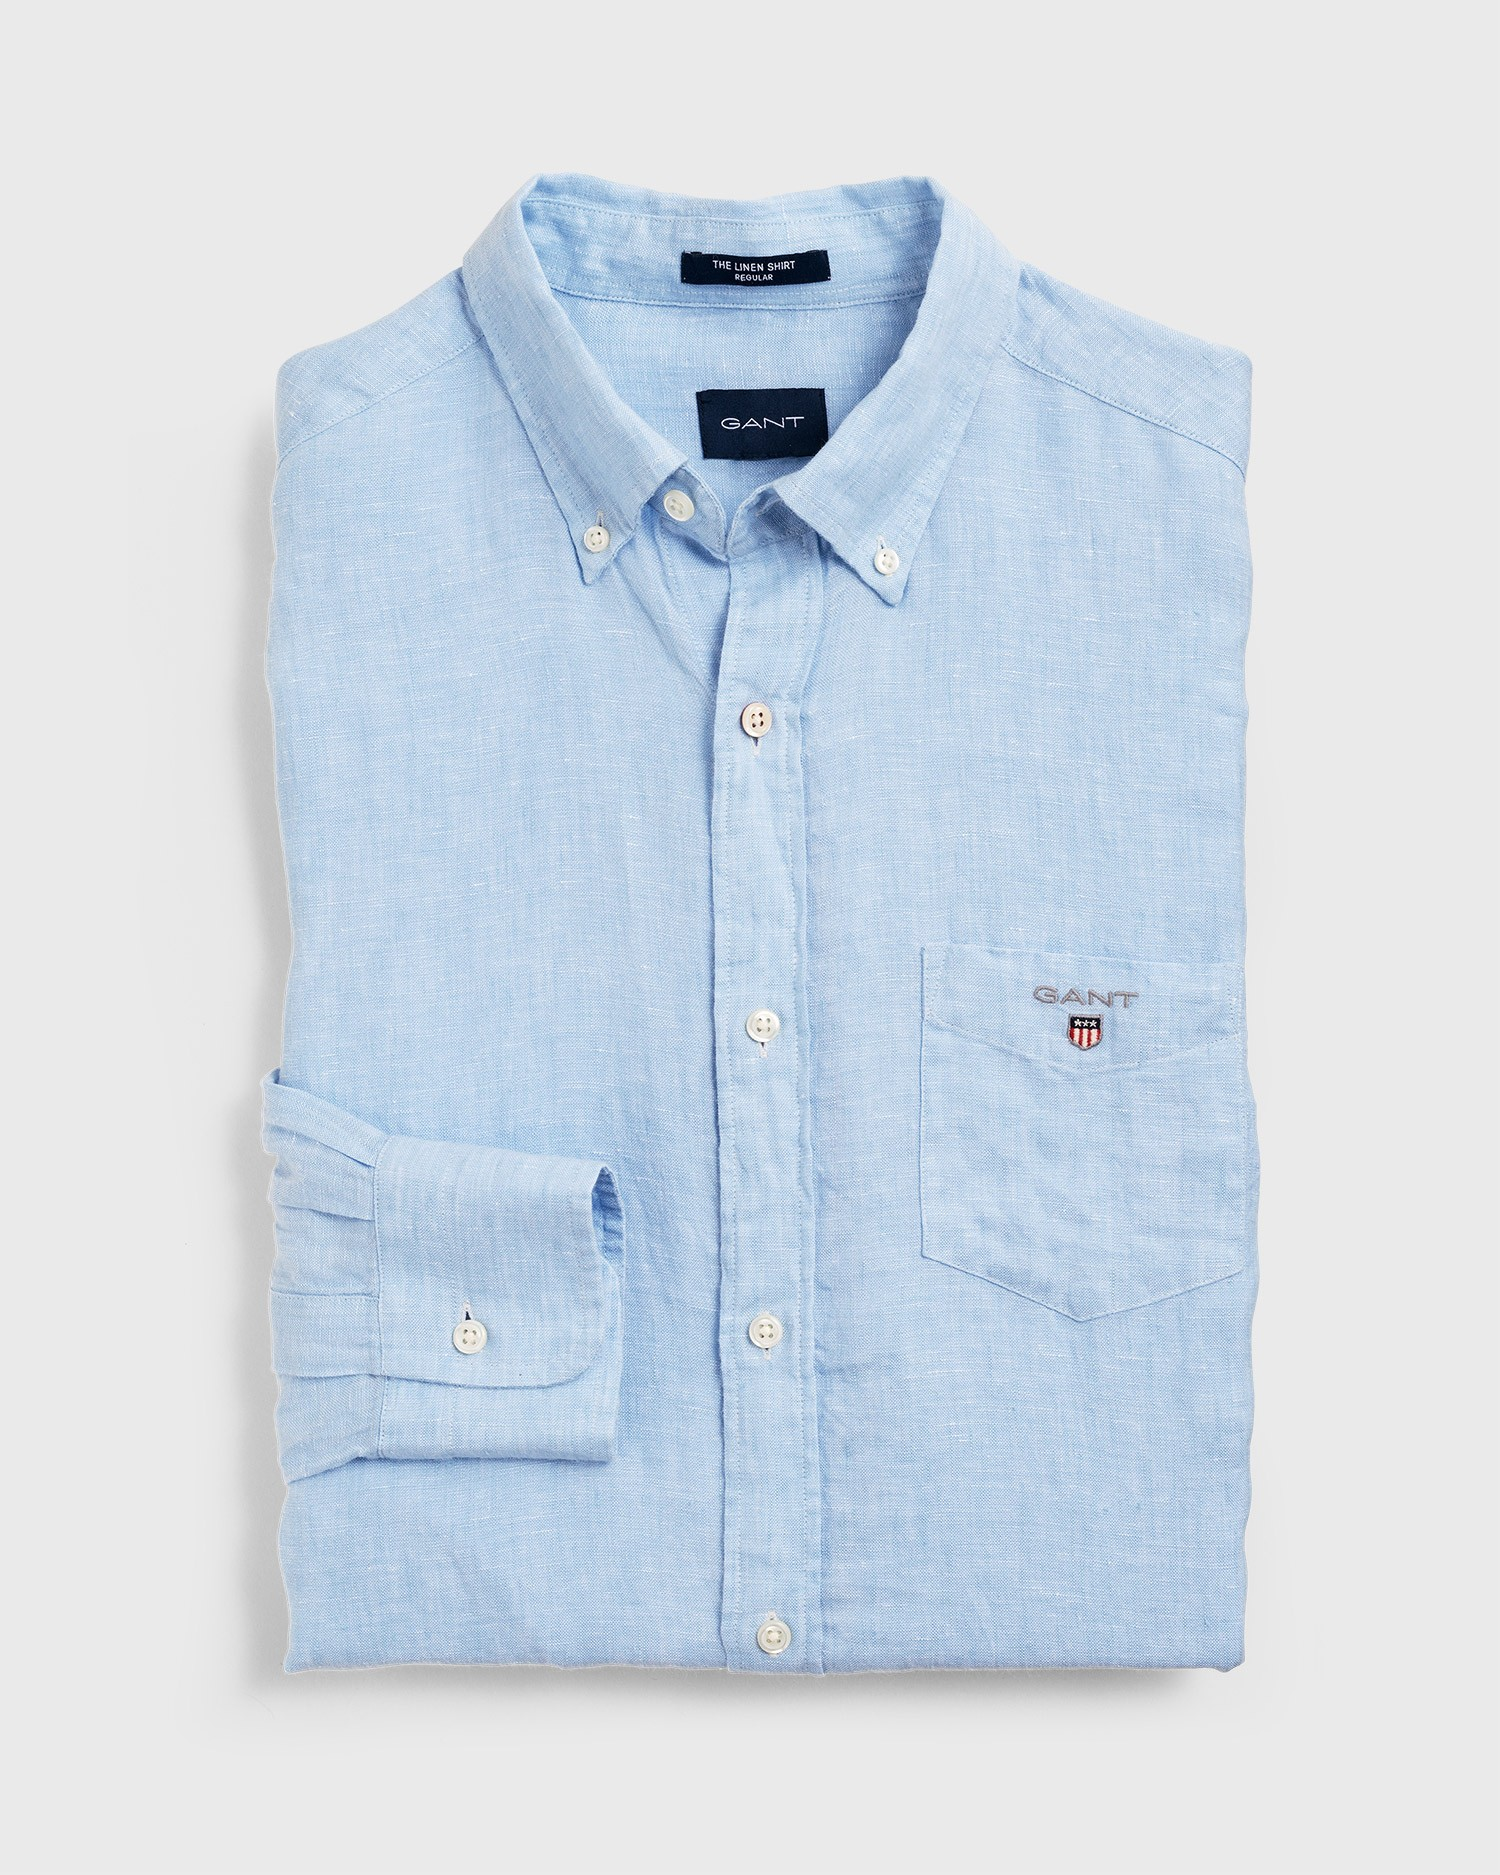 GANT Men's Linen Regular Fit Shirt - 3040620